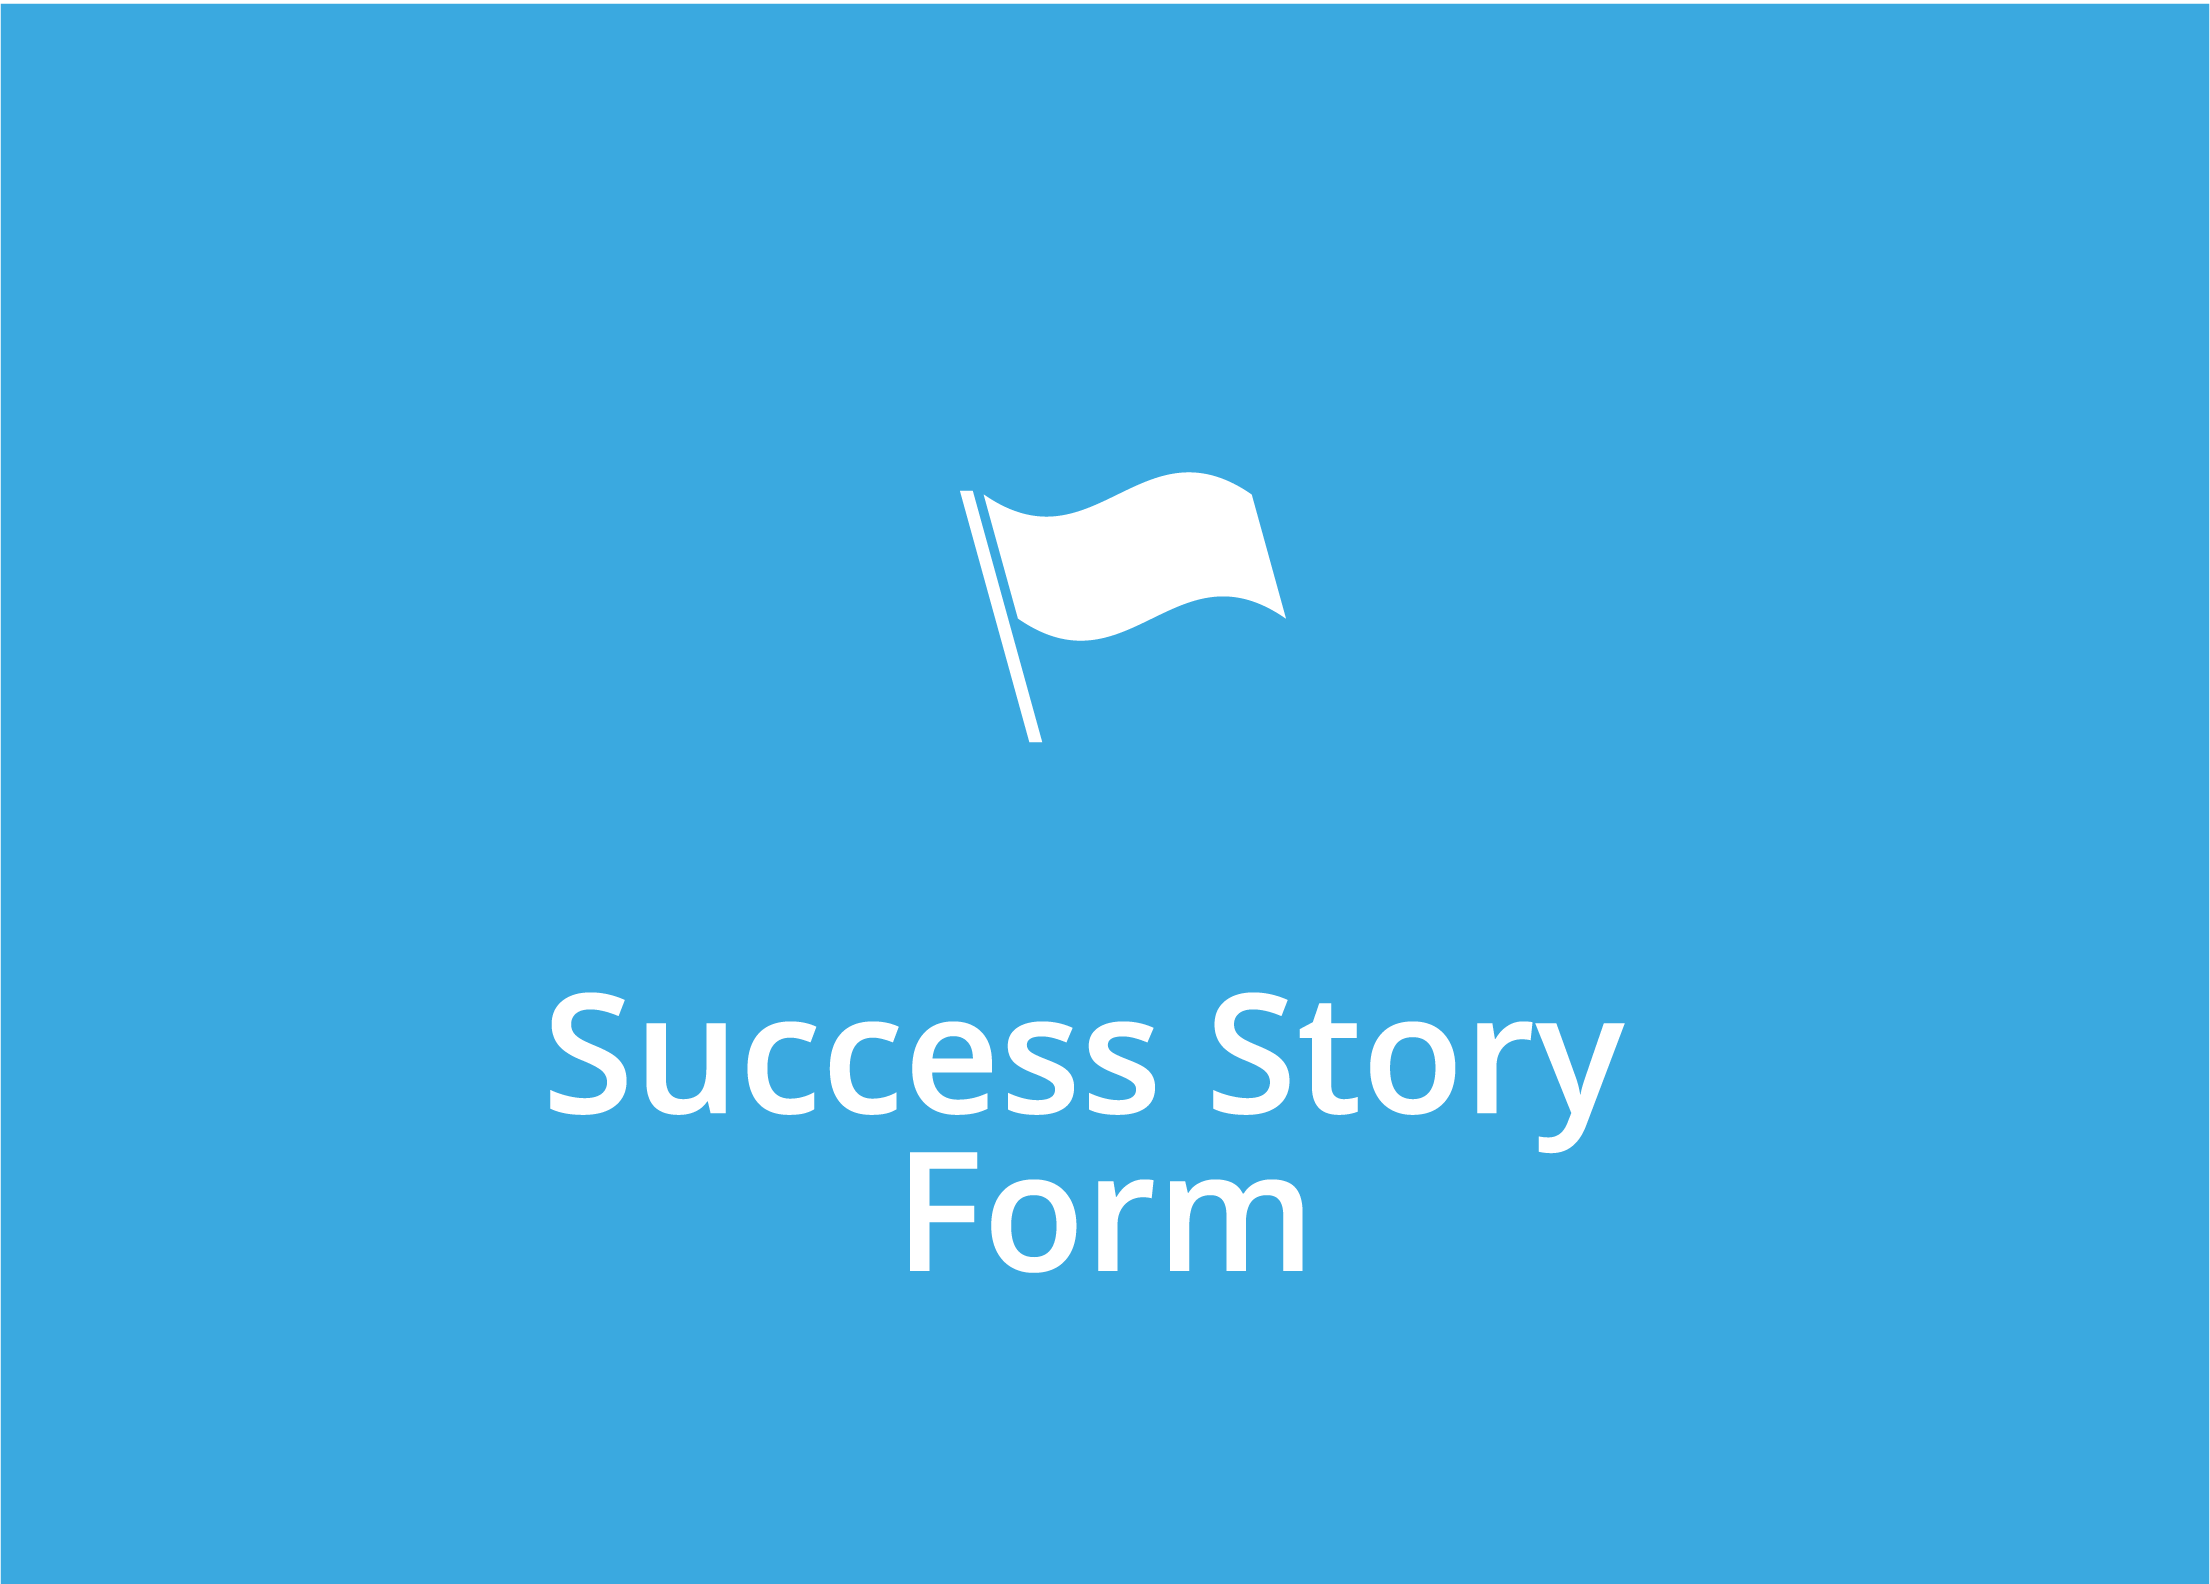 Success Story Form